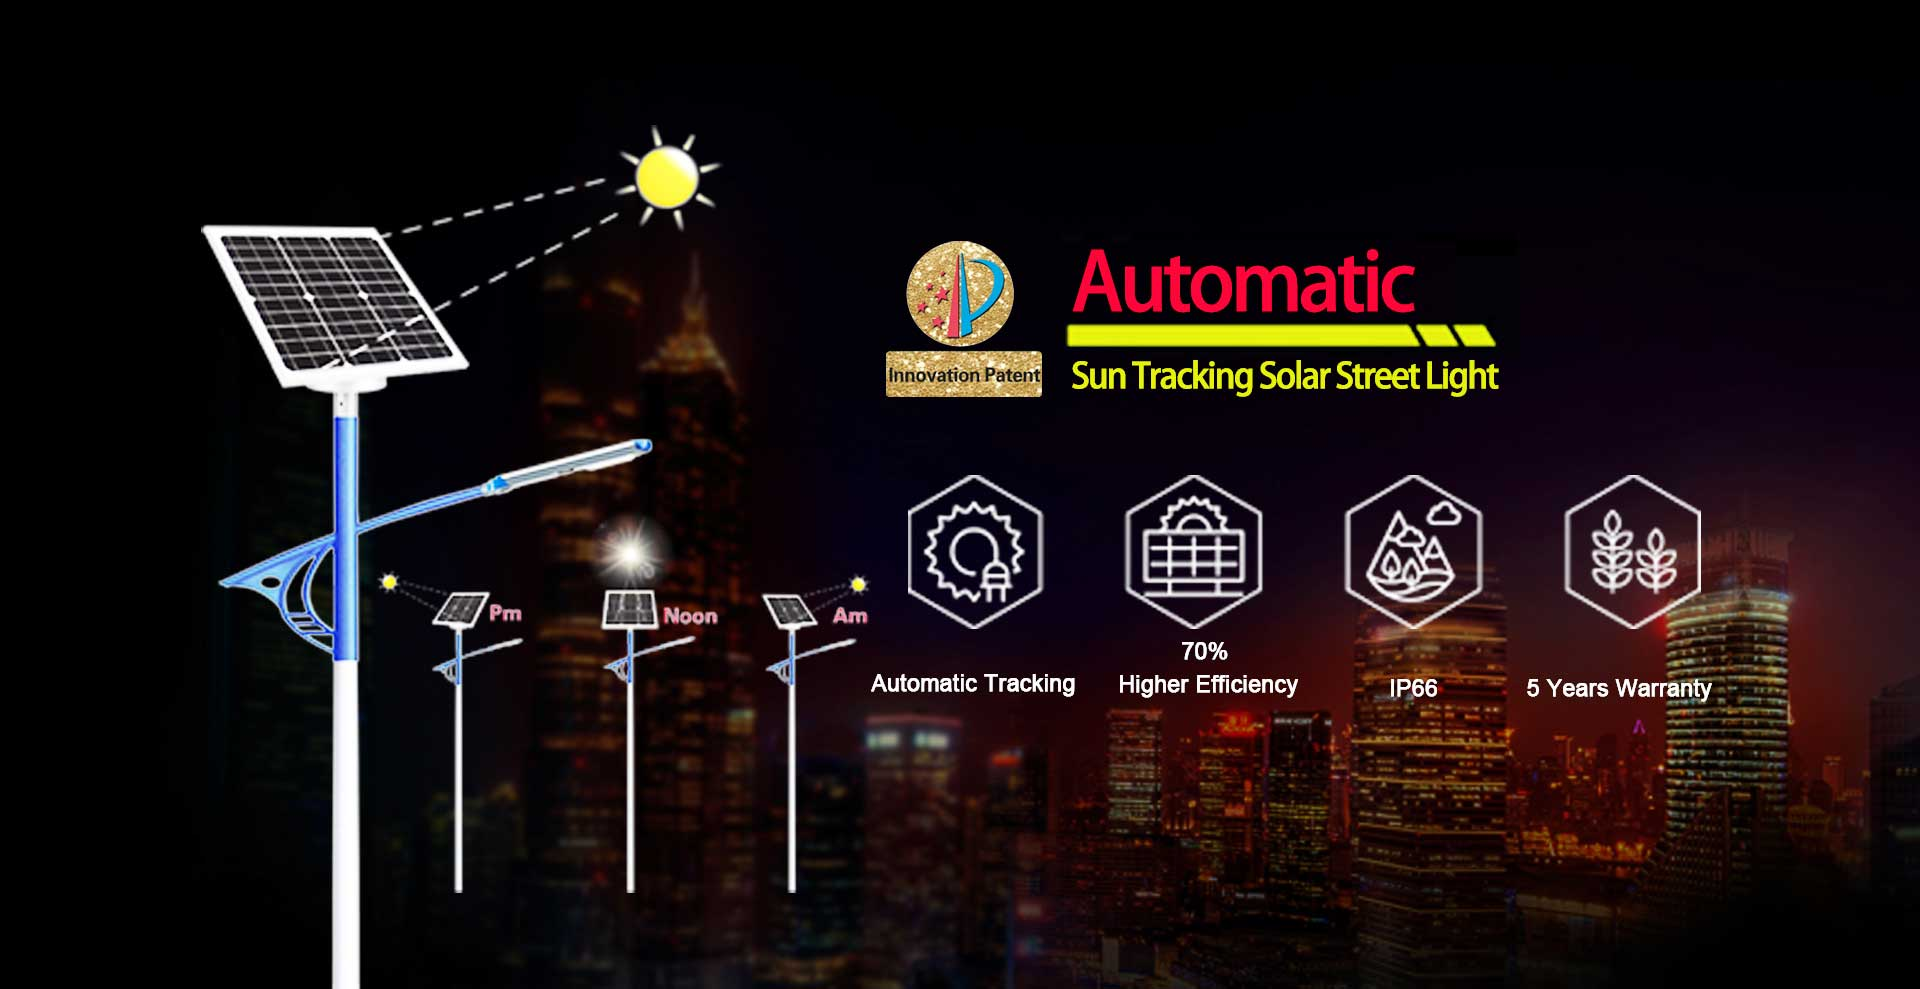 Automatische-Sun-Tracking-Solar-Street-light-1